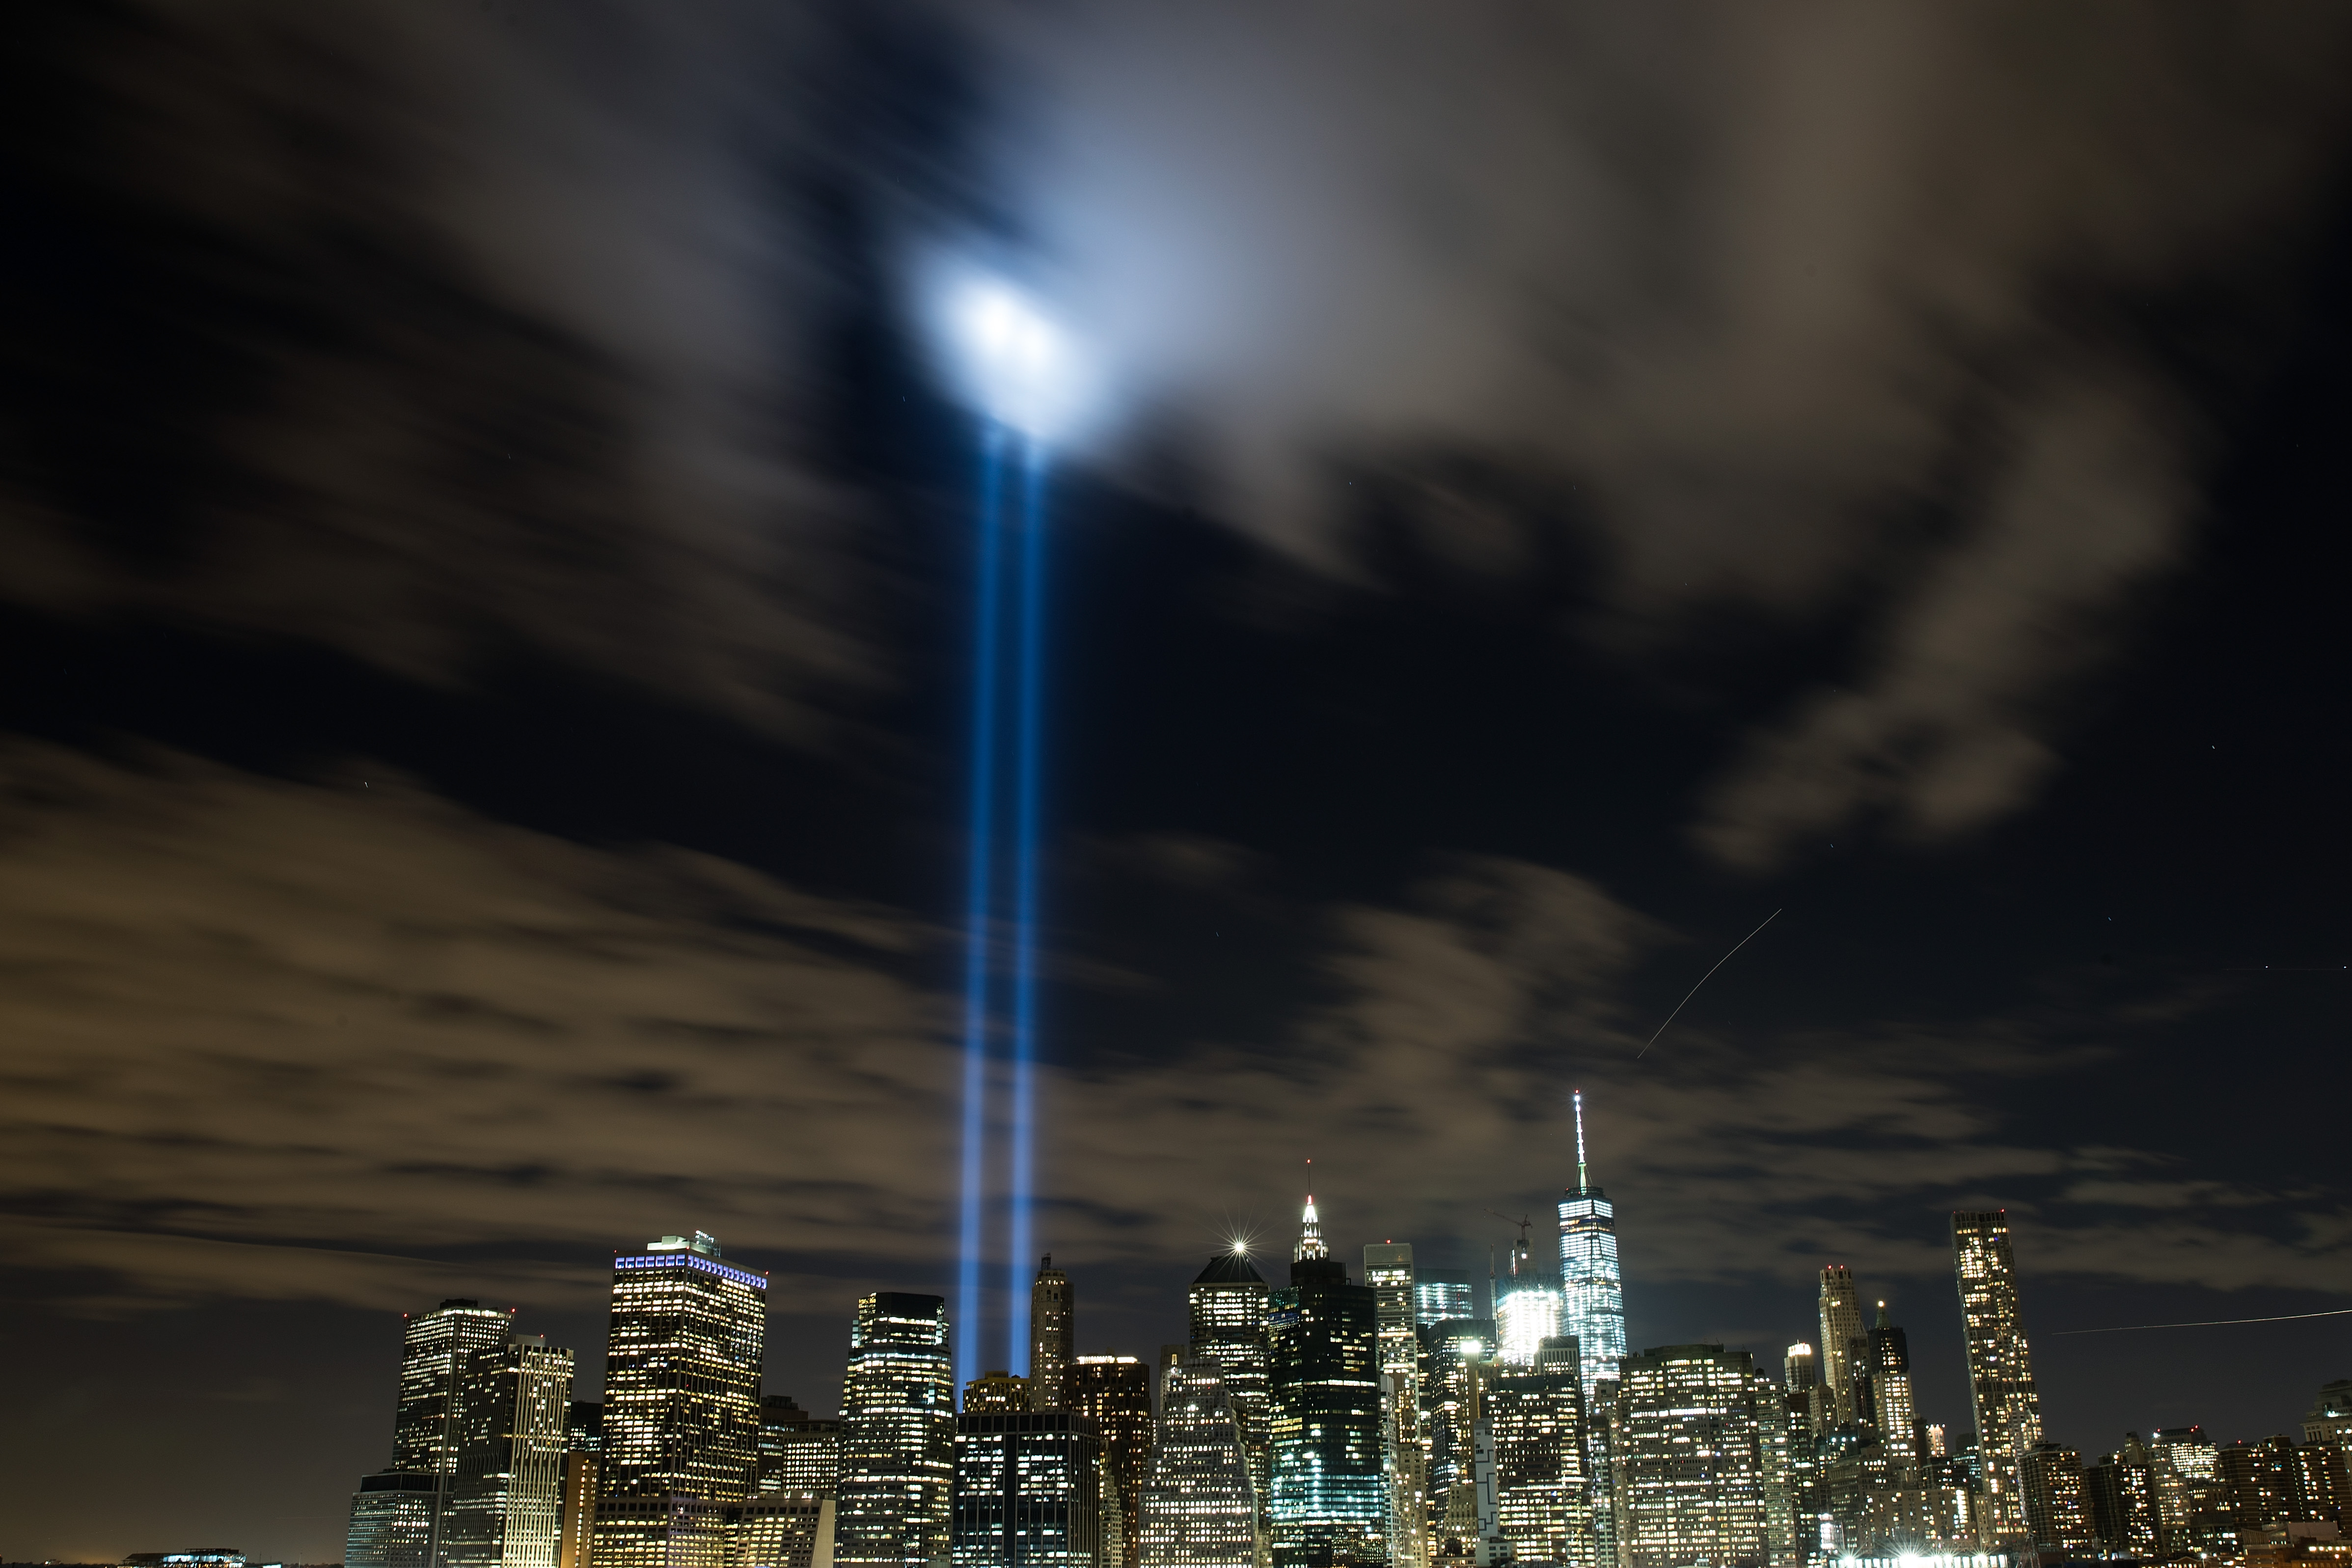 5 Lunatic Conspiracy Theories About 9/11 That Just Won't Go Away